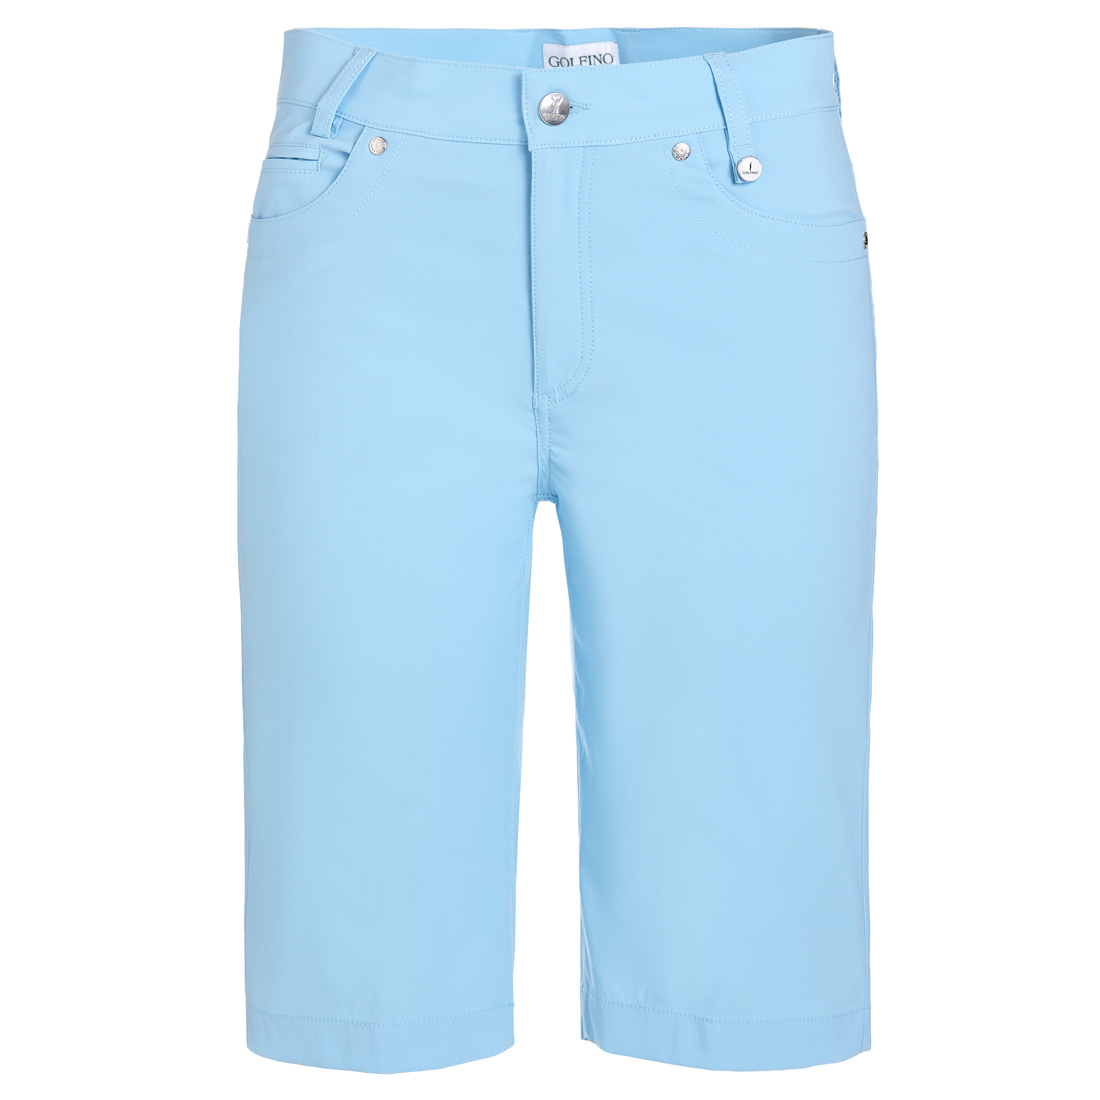 Damen Golf-Bermuda Techno Stretch in Slim Fit